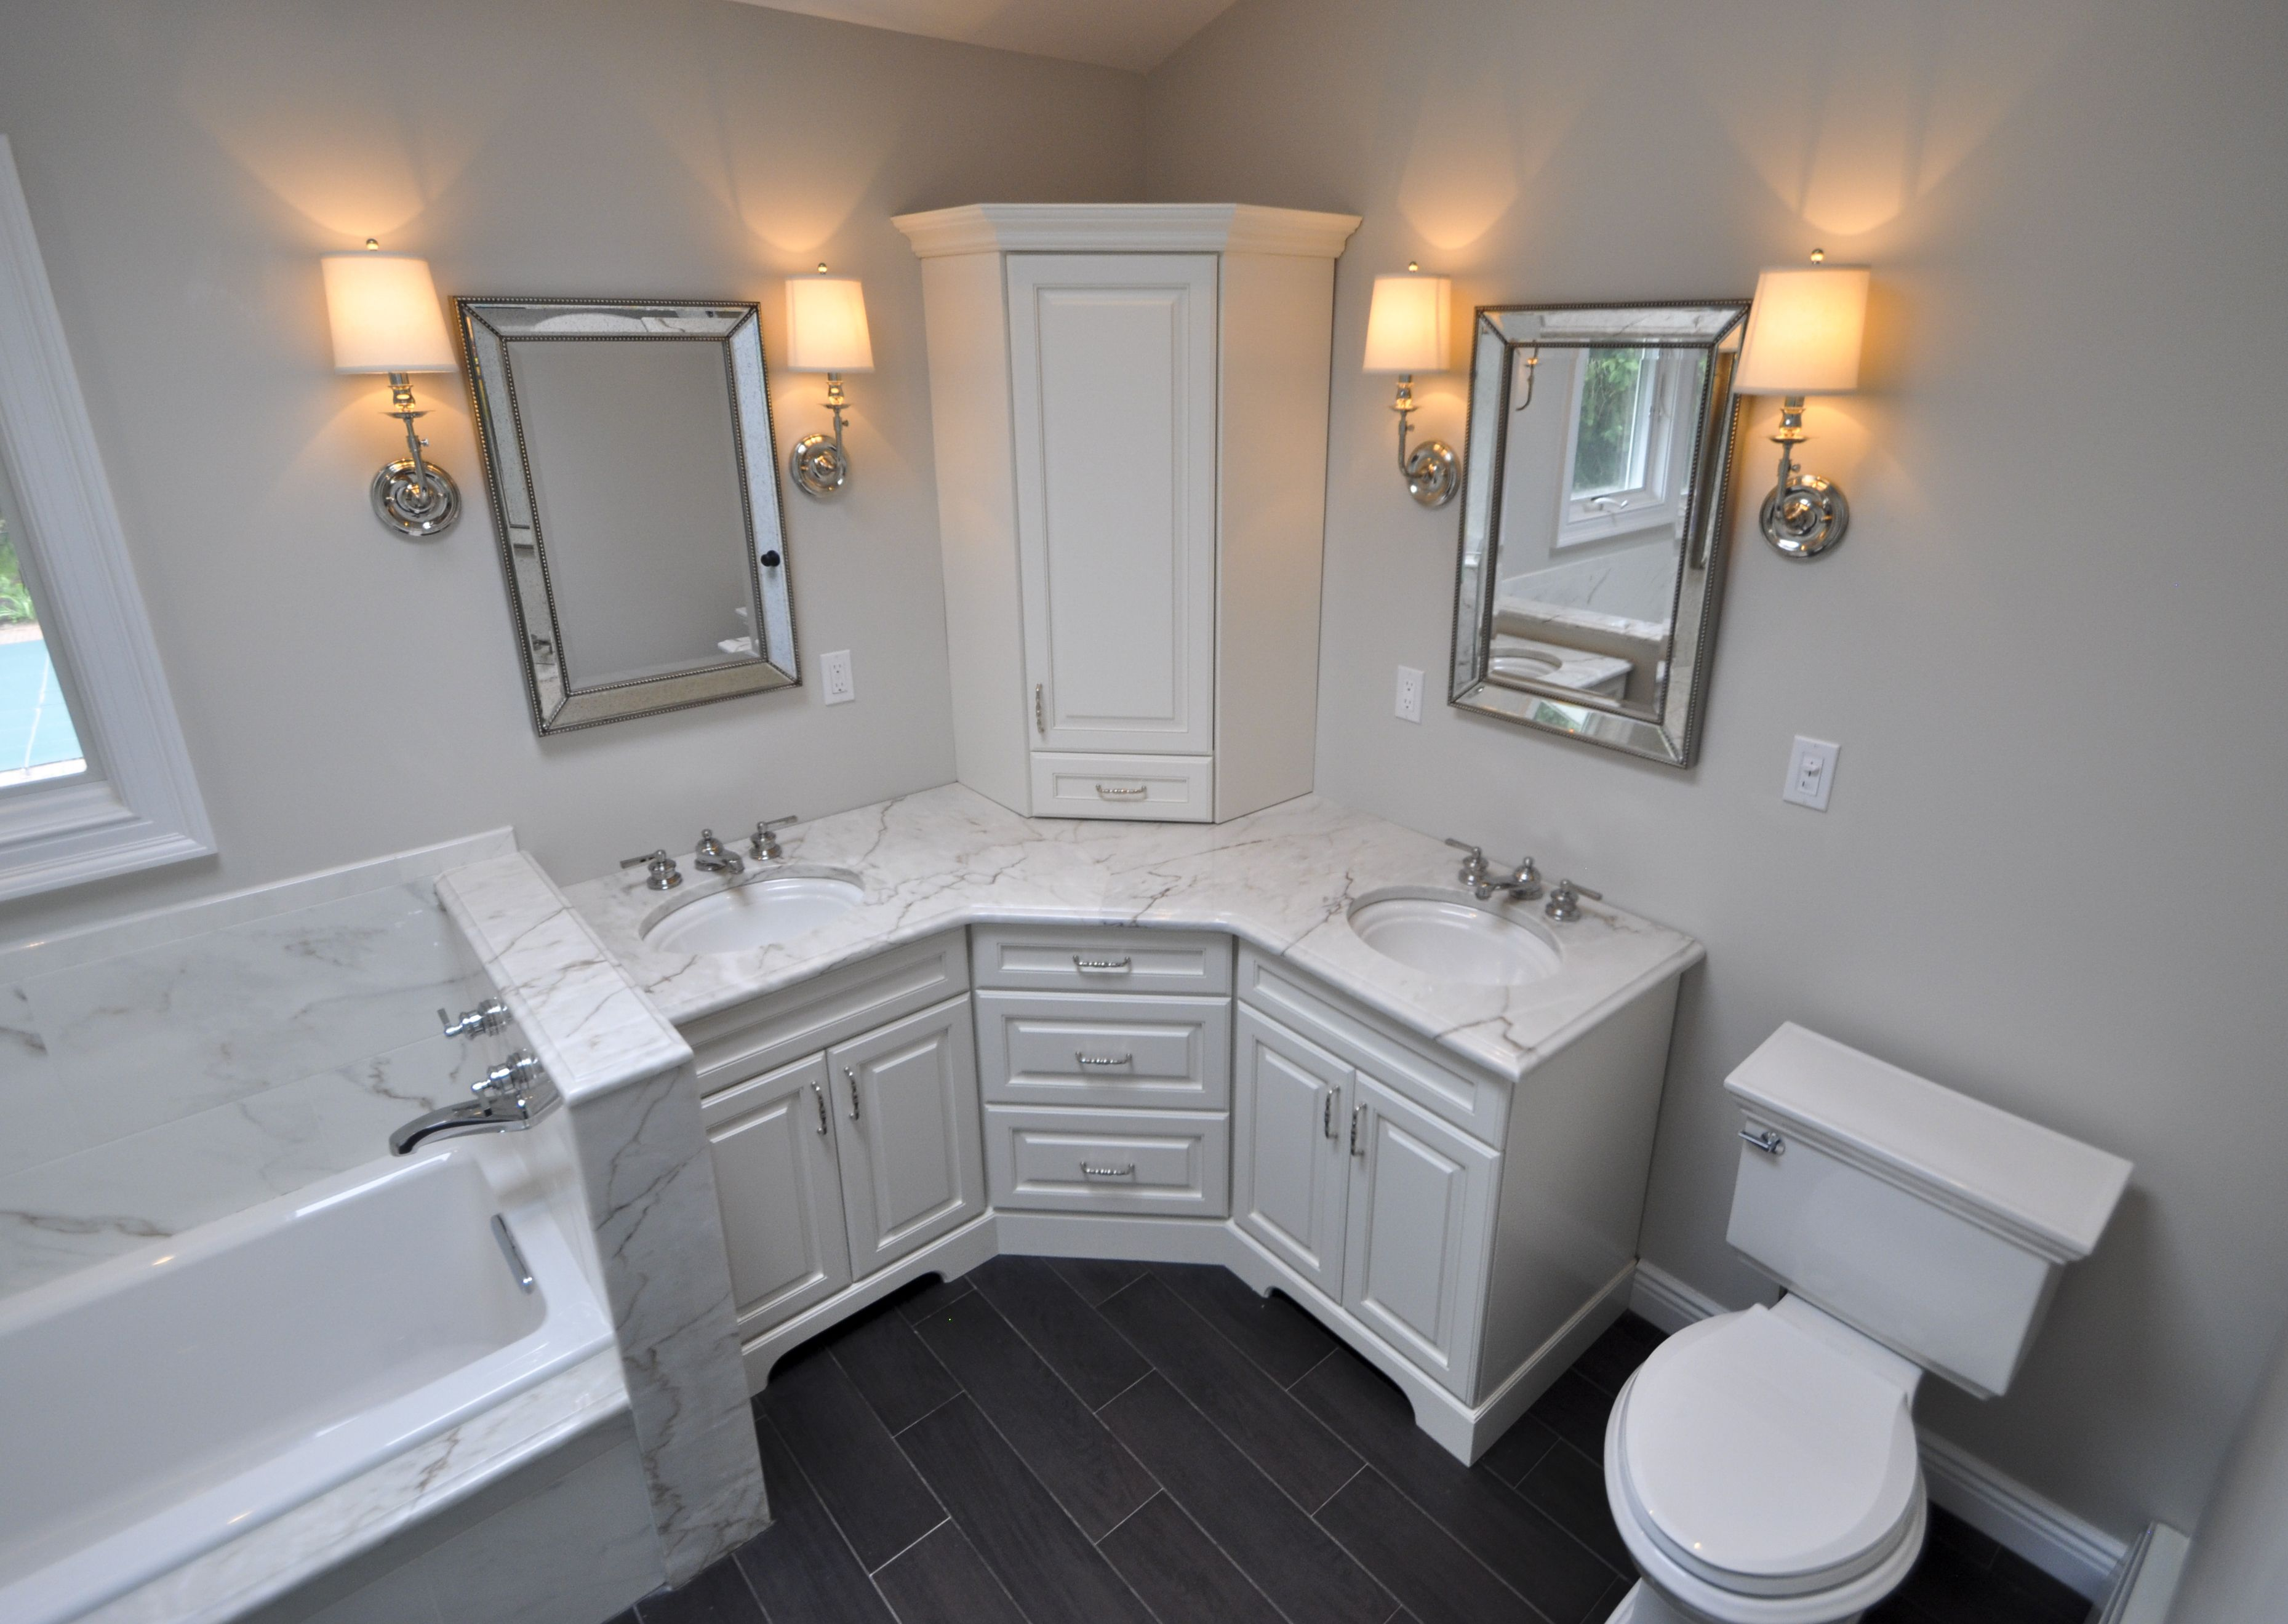 Custom Master Bathroom With Double Corner Vanity Tower Cabinet Wall Sconces Toi Corner Bathroom Vanity Beautiful Bathroom Cabinets Custom Bathroom Cabinets